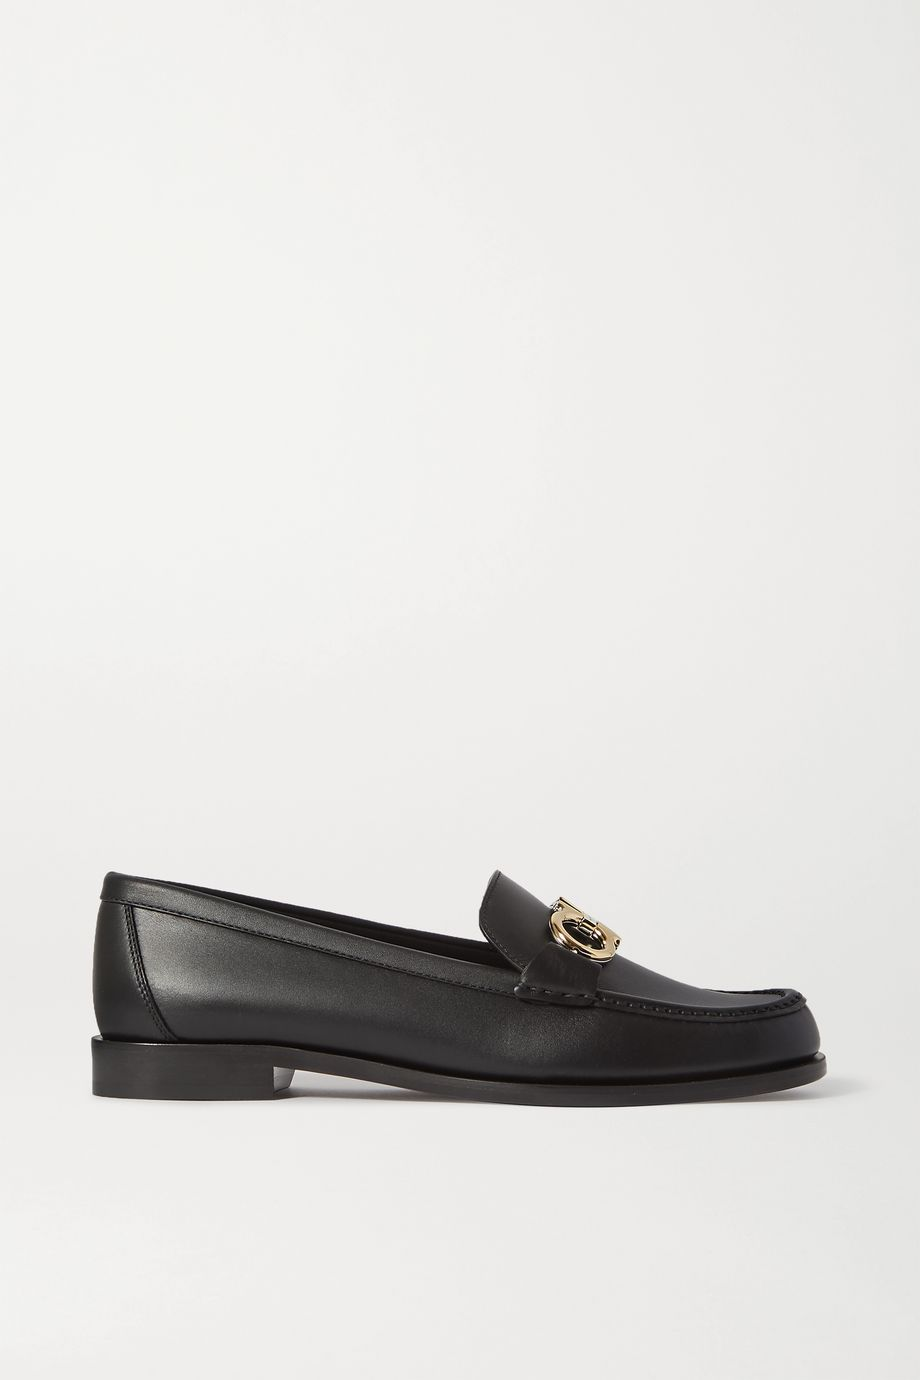 Salvatore Ferragamo Rolo embellished leather loafers